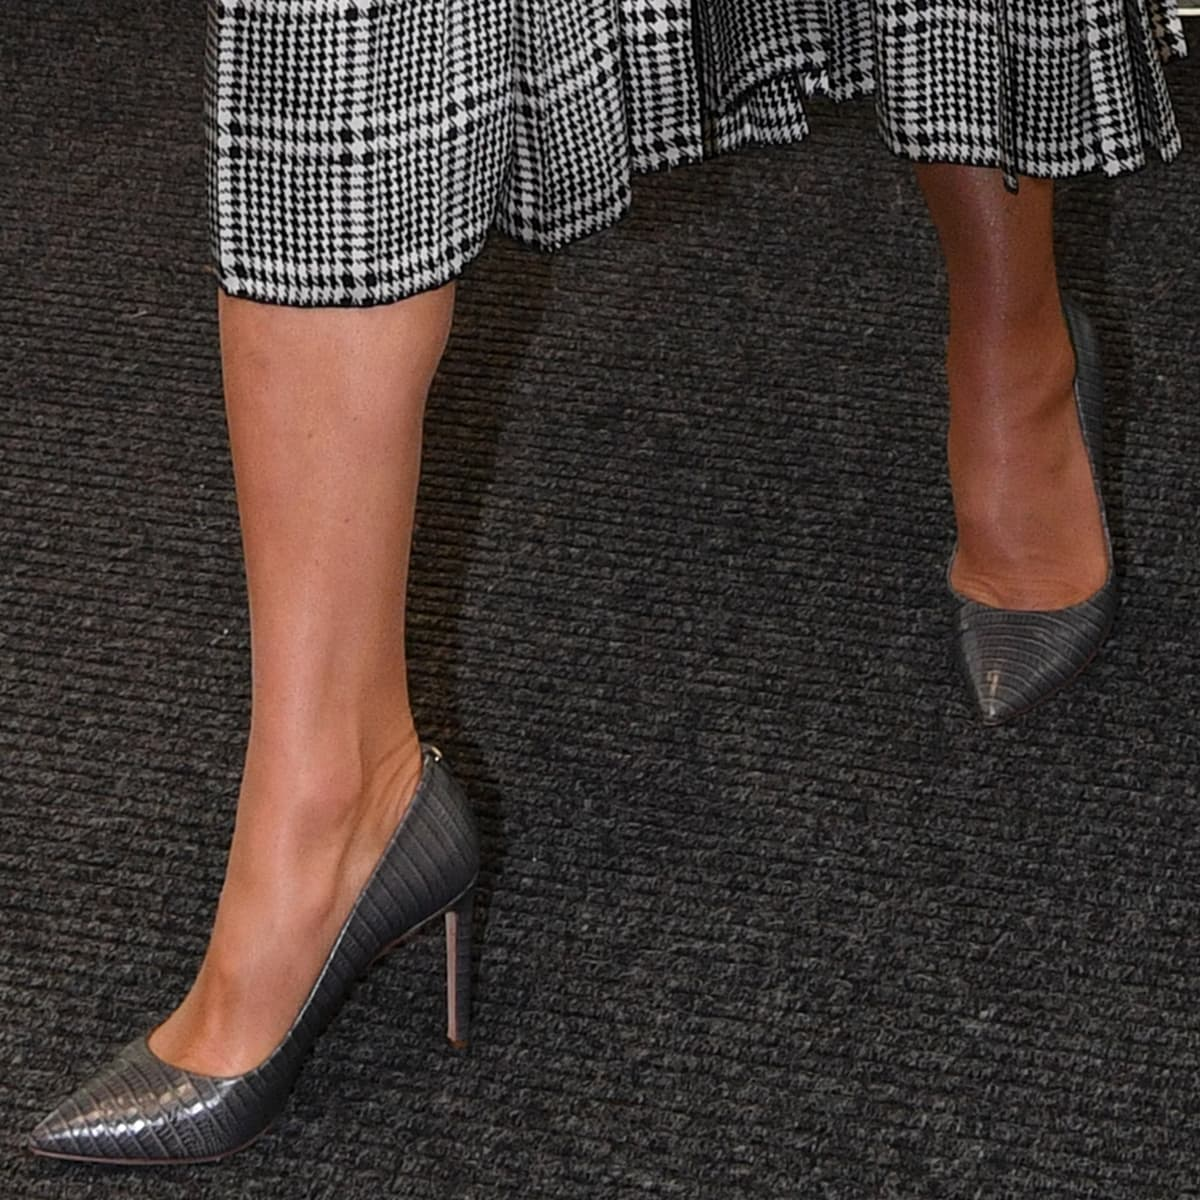 Kate Middleton shows off her feet in embossed Hugo Boss pointy-toe pumps